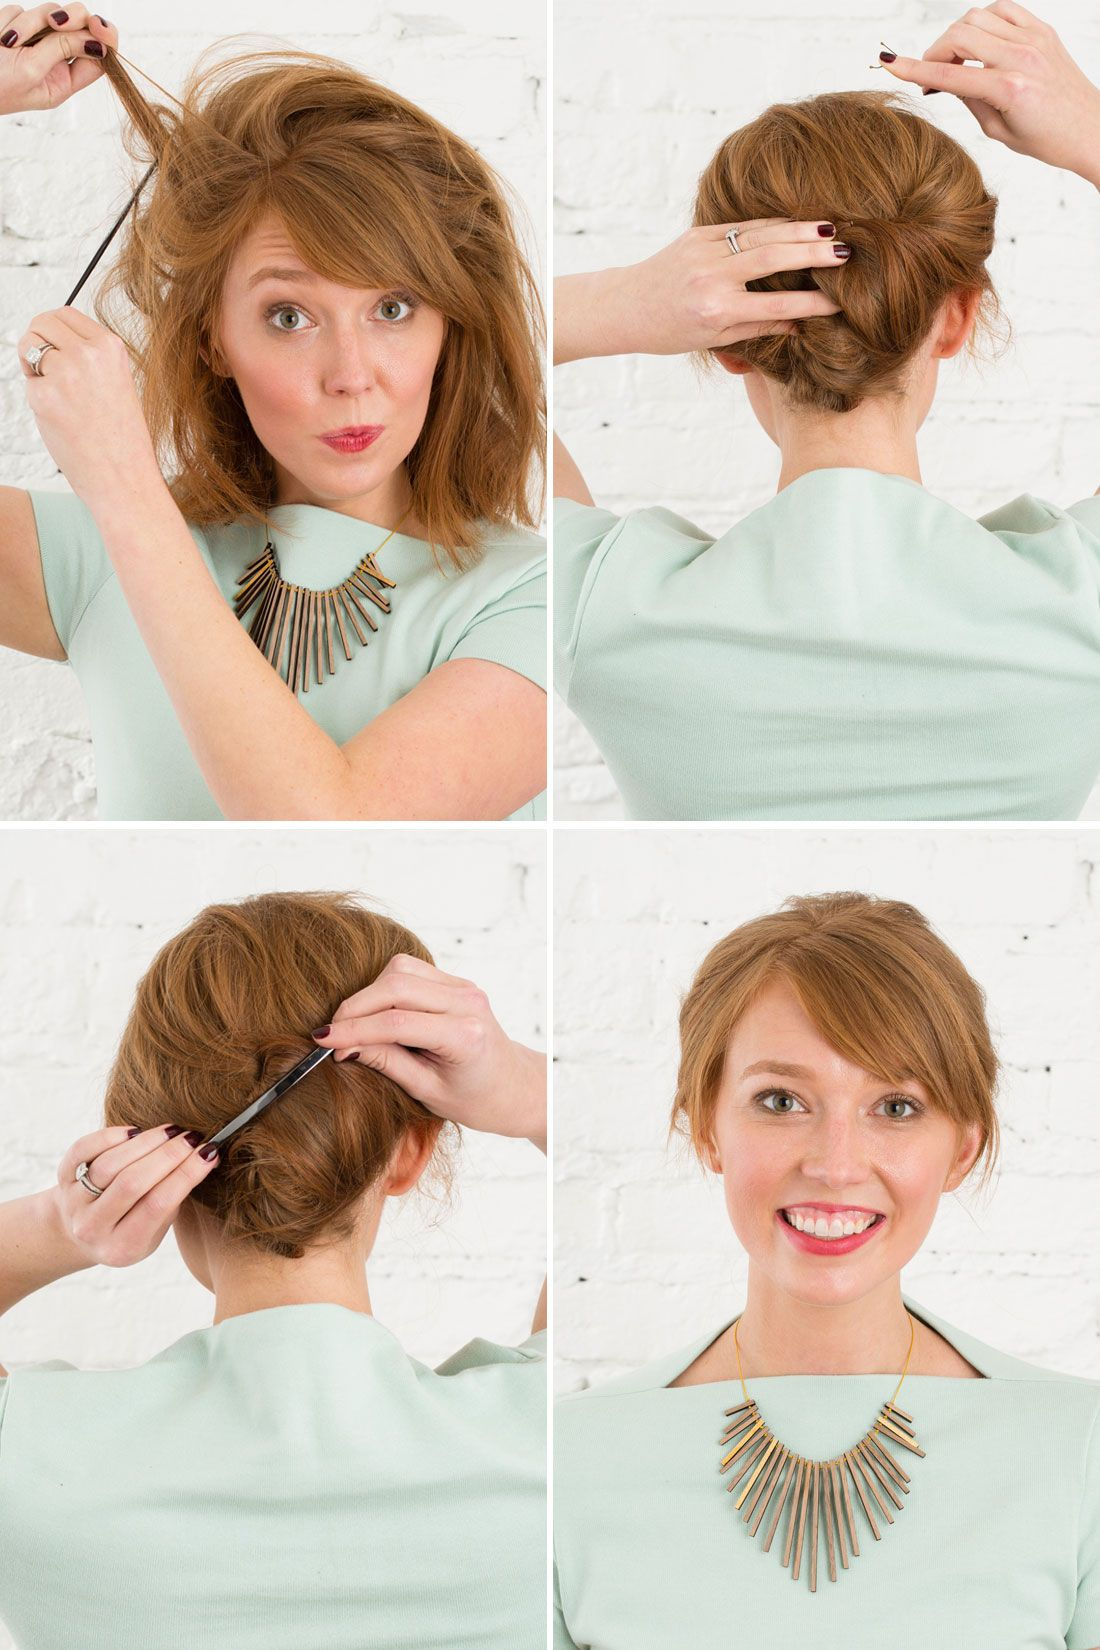 Barrette Hairstyles Entrancing 3 Easy 5Minute Hairstyles Using Emma Stone's Metal Barrette  Updo